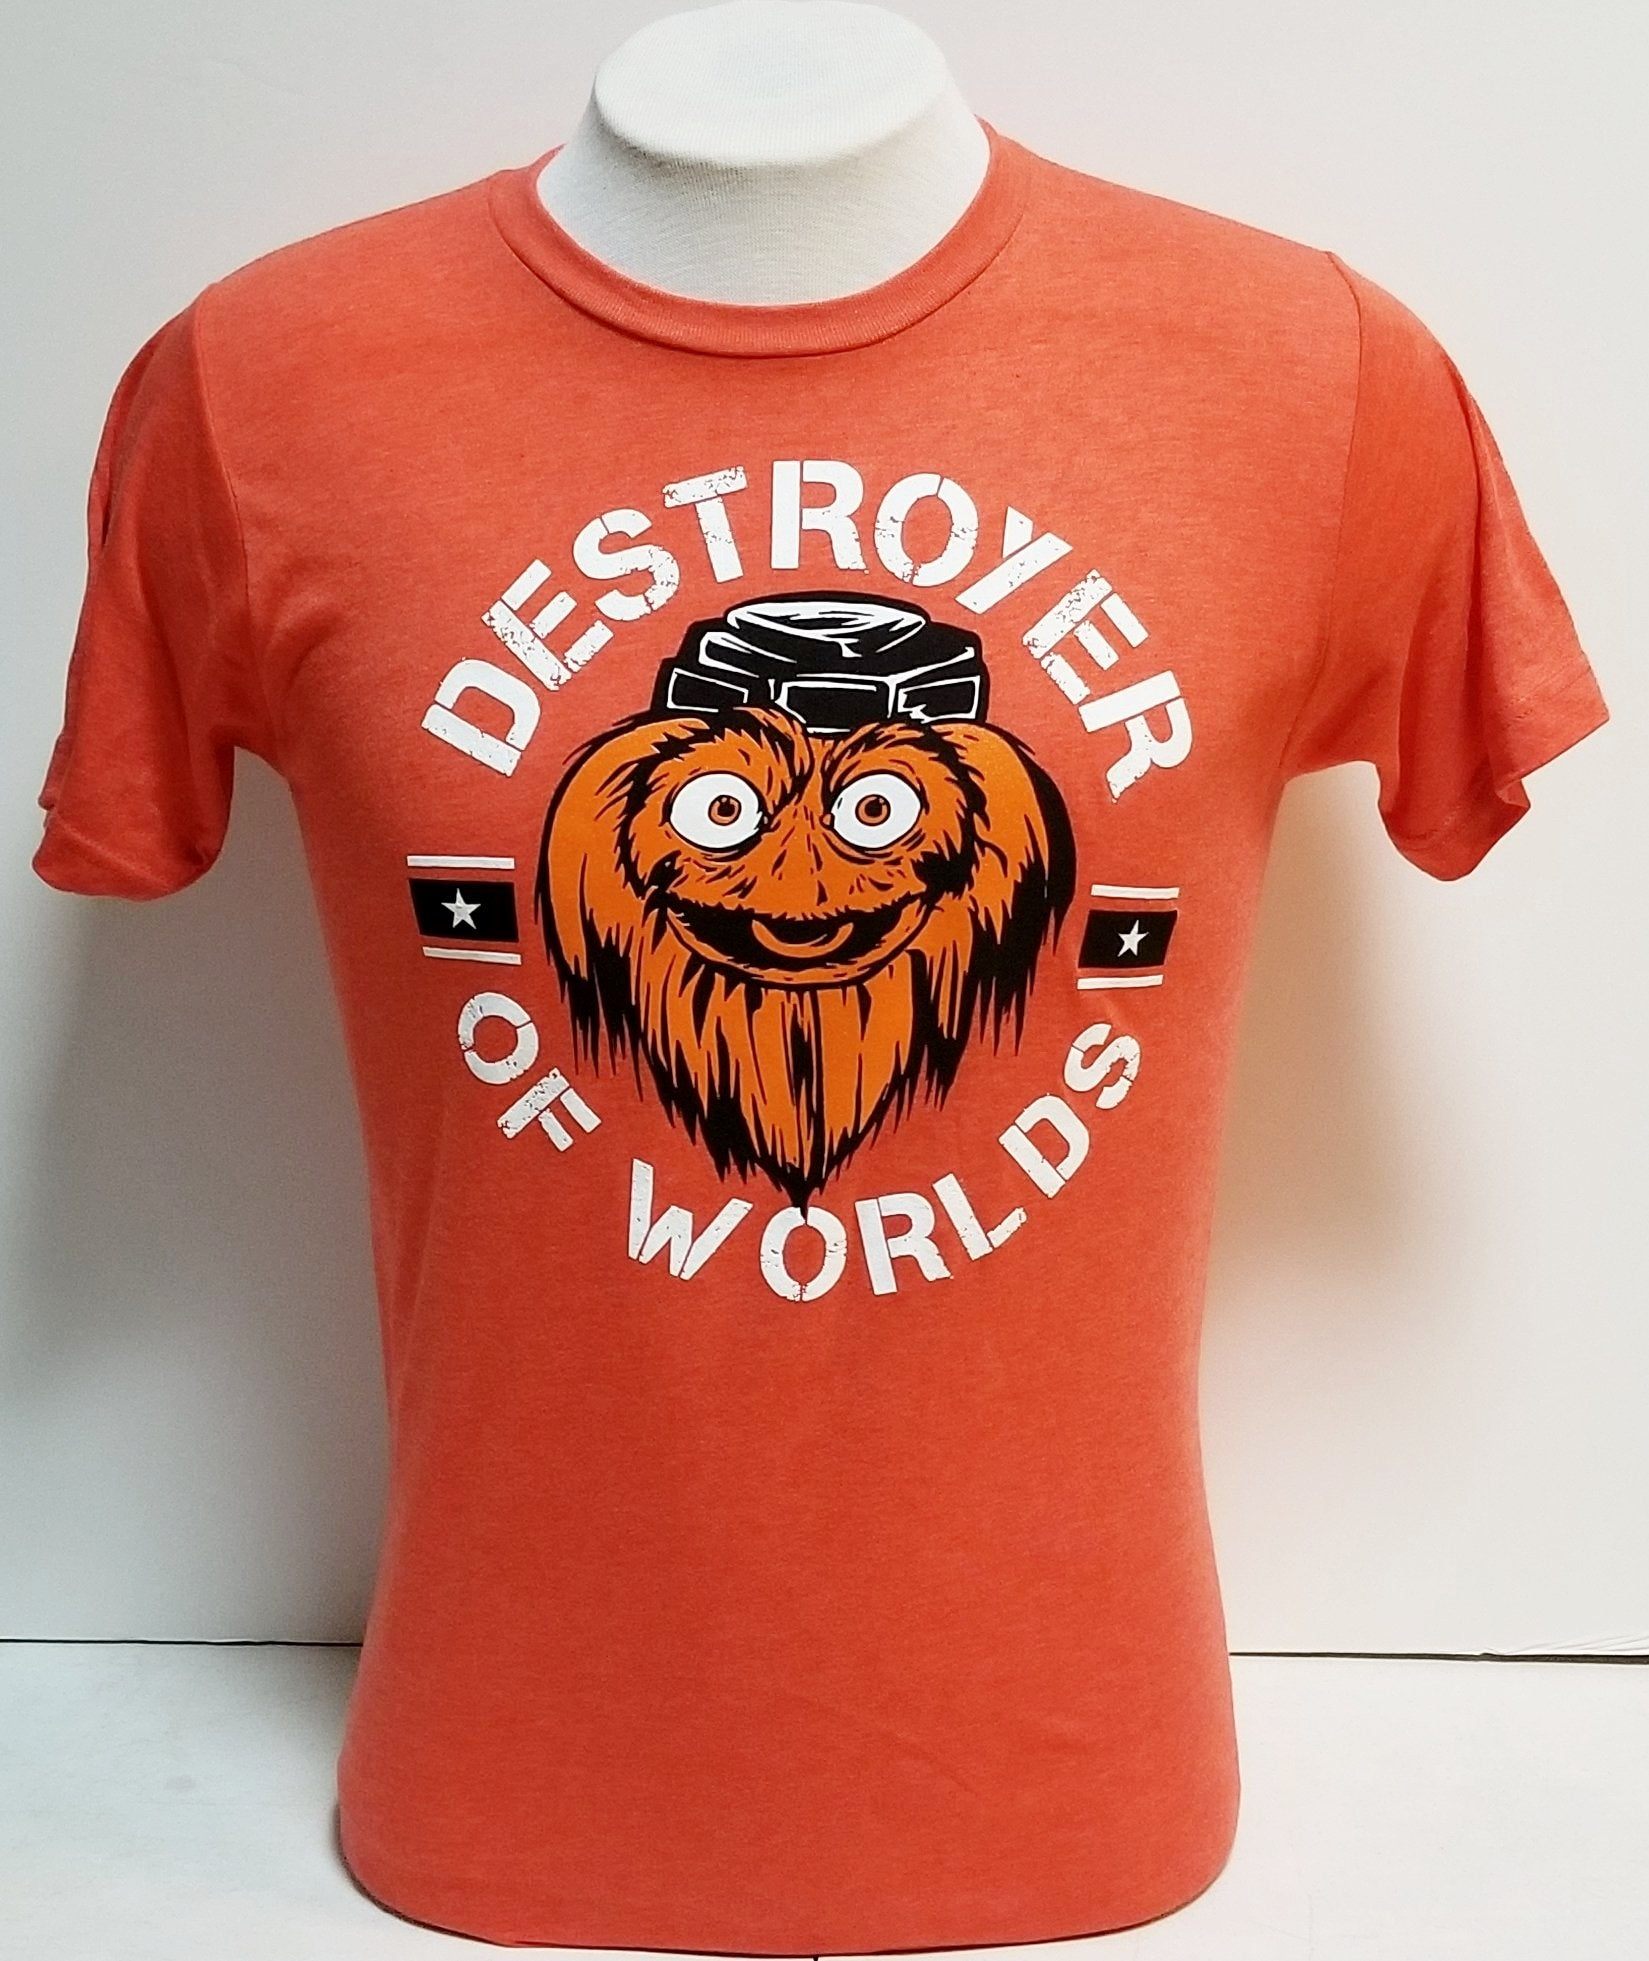 e1ad00dca Gritty Destroyer Of Worlds Orange tee shirt - Shibe Vintage Sports